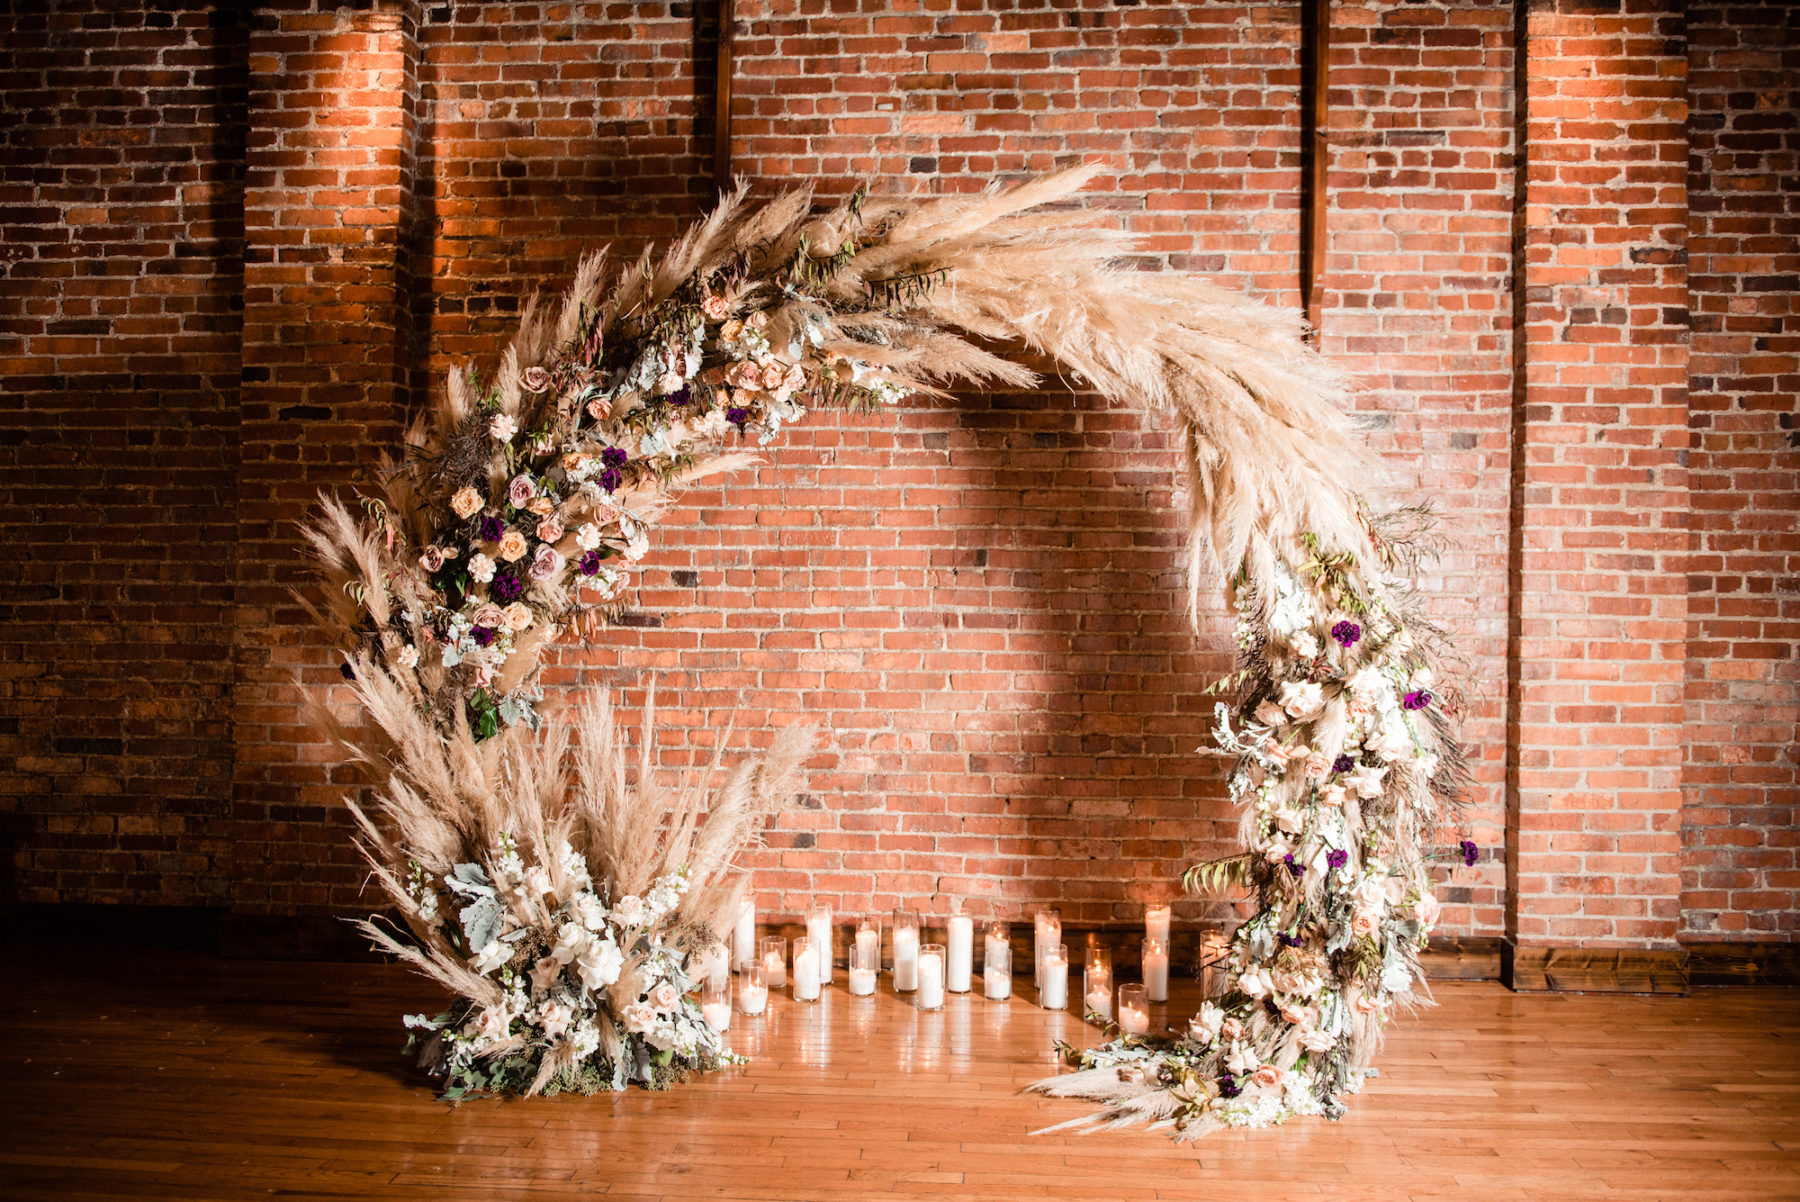 Wedding Floral Arch: Nashville wedding planner Amy & I Designs featured on Nashville Bride Guide